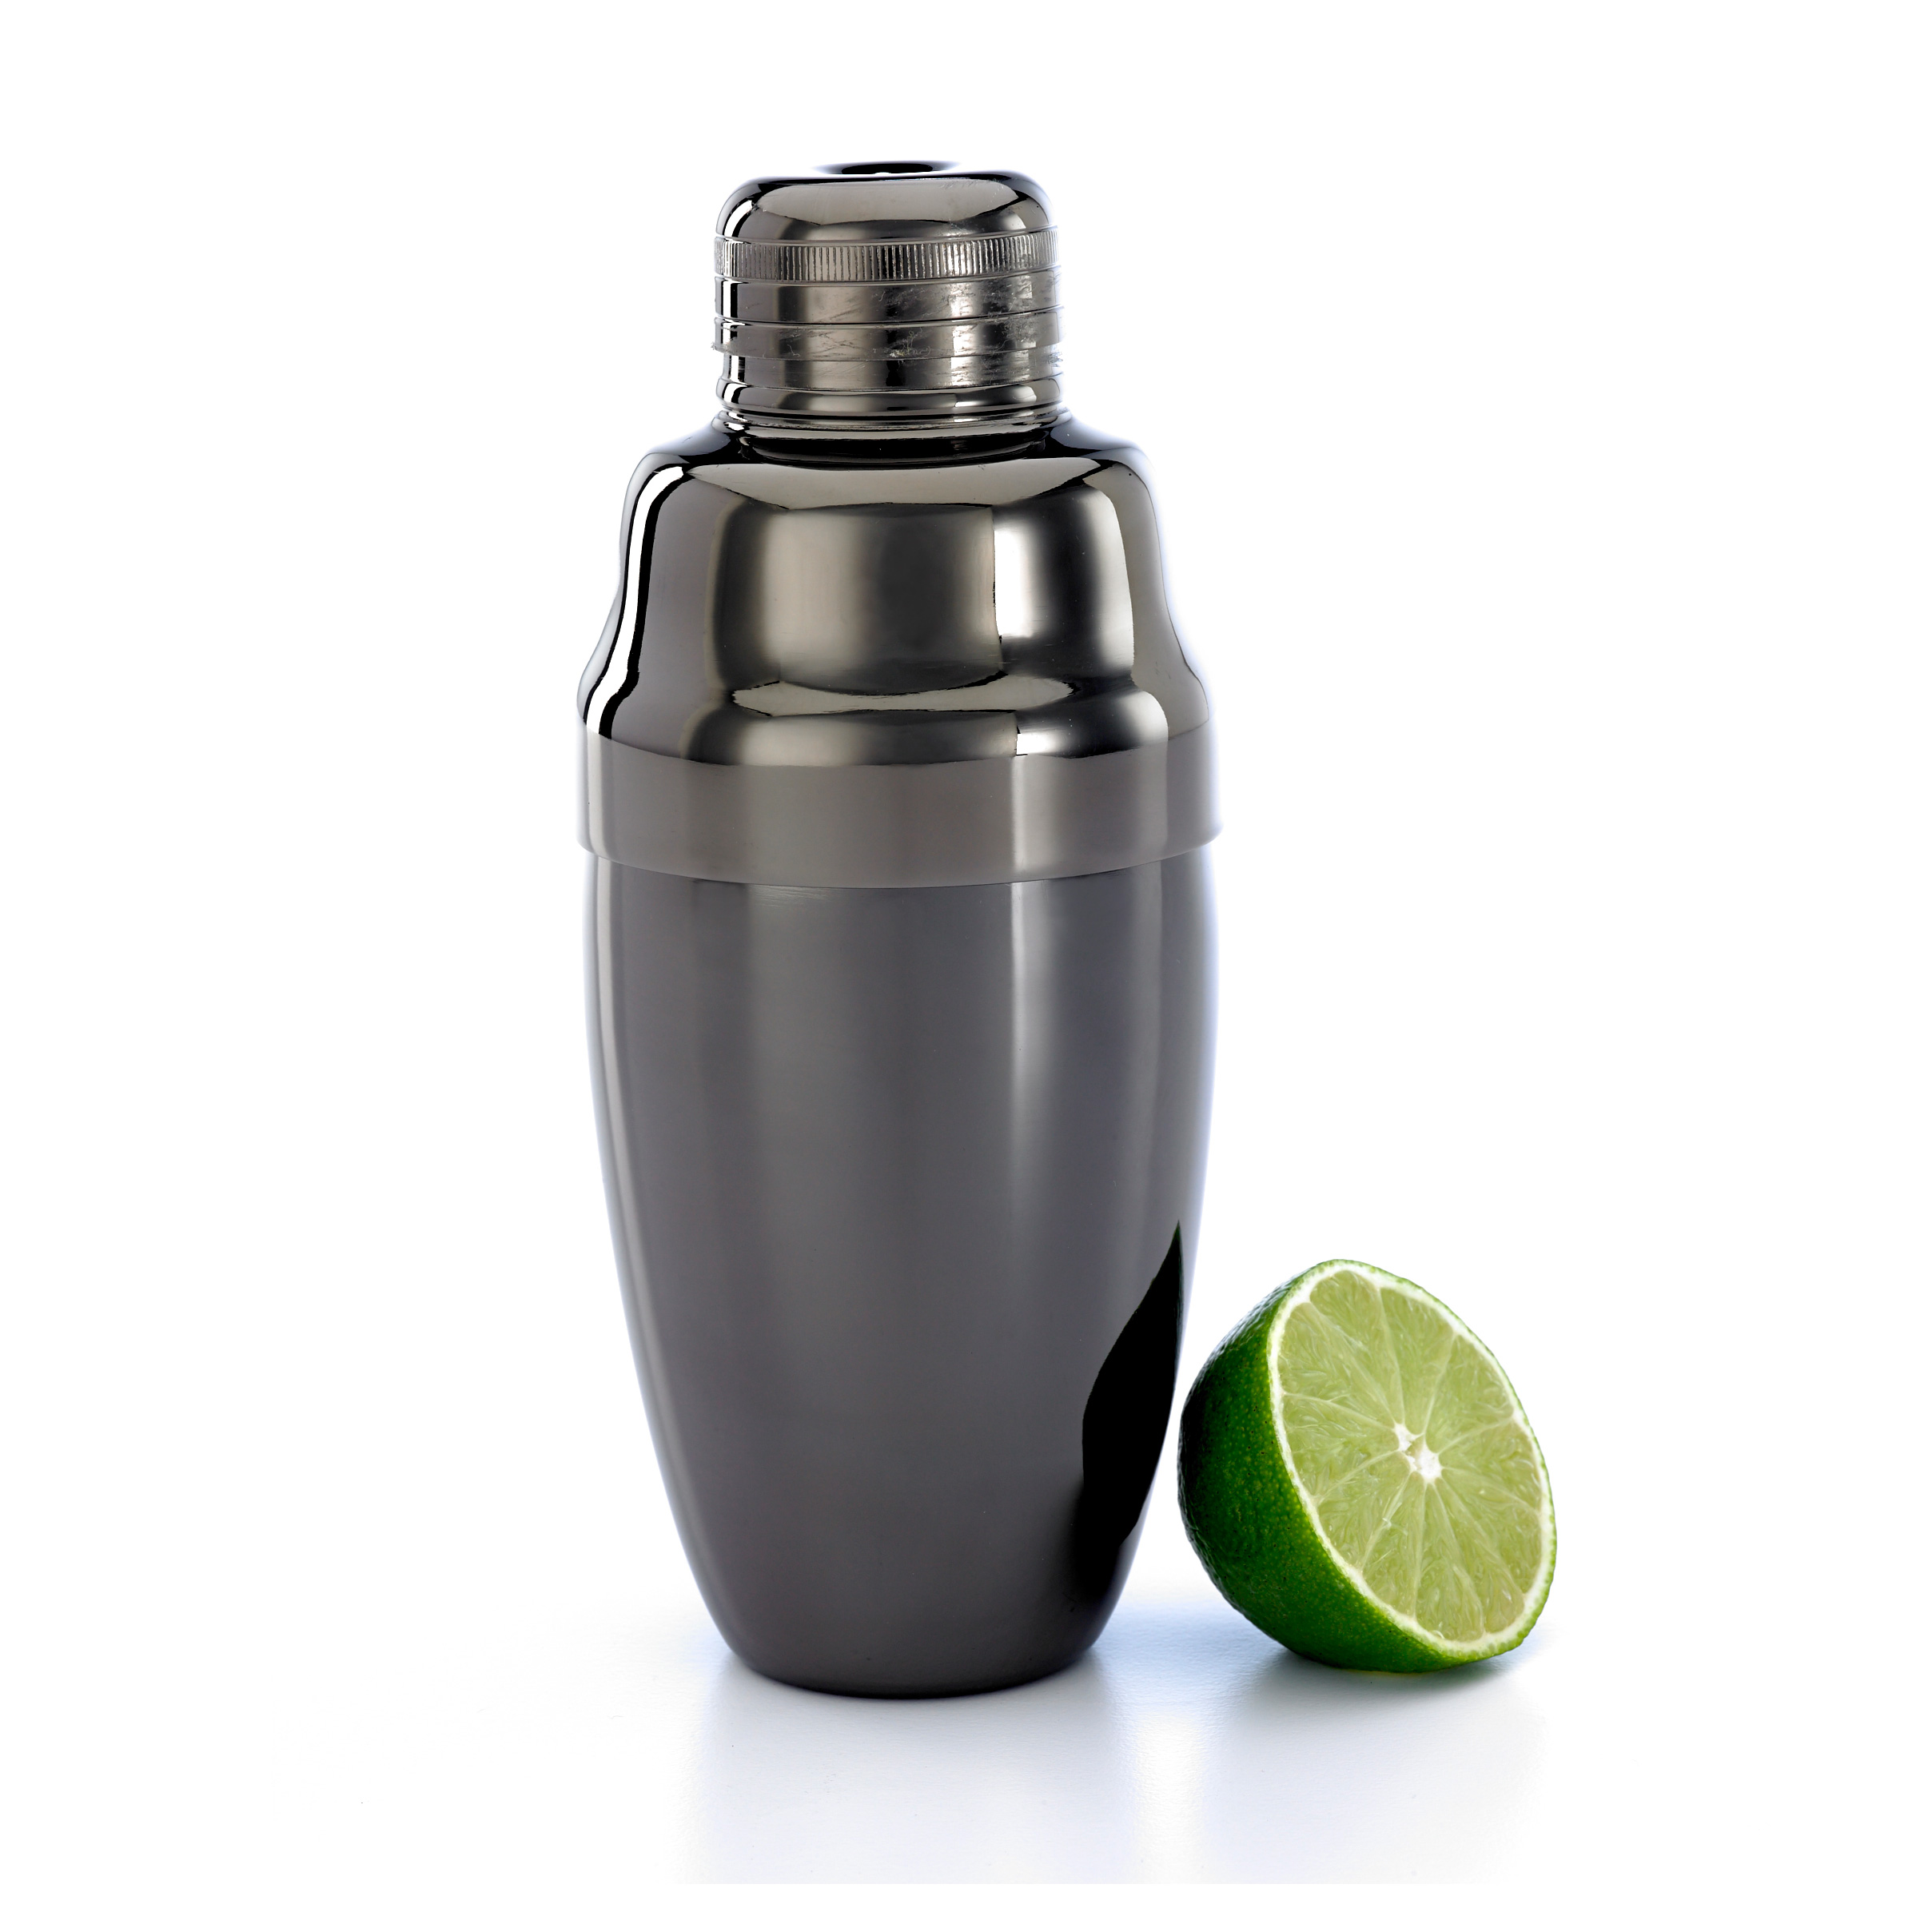 Mercer Culinary M37038BK bar cocktail shaker